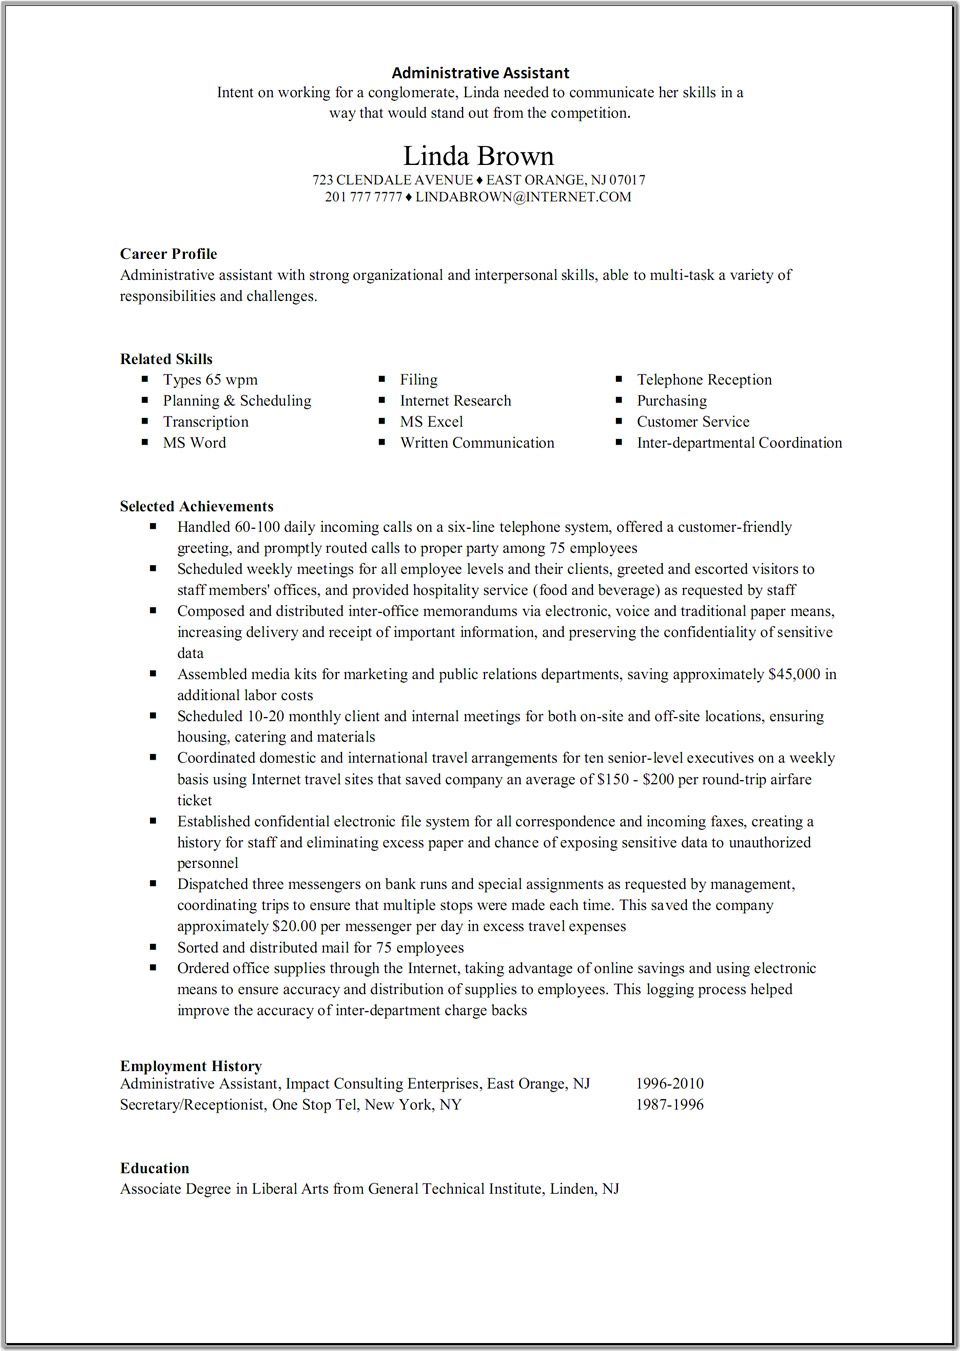 education administrative assistant resumes template education administrative assistant resumes